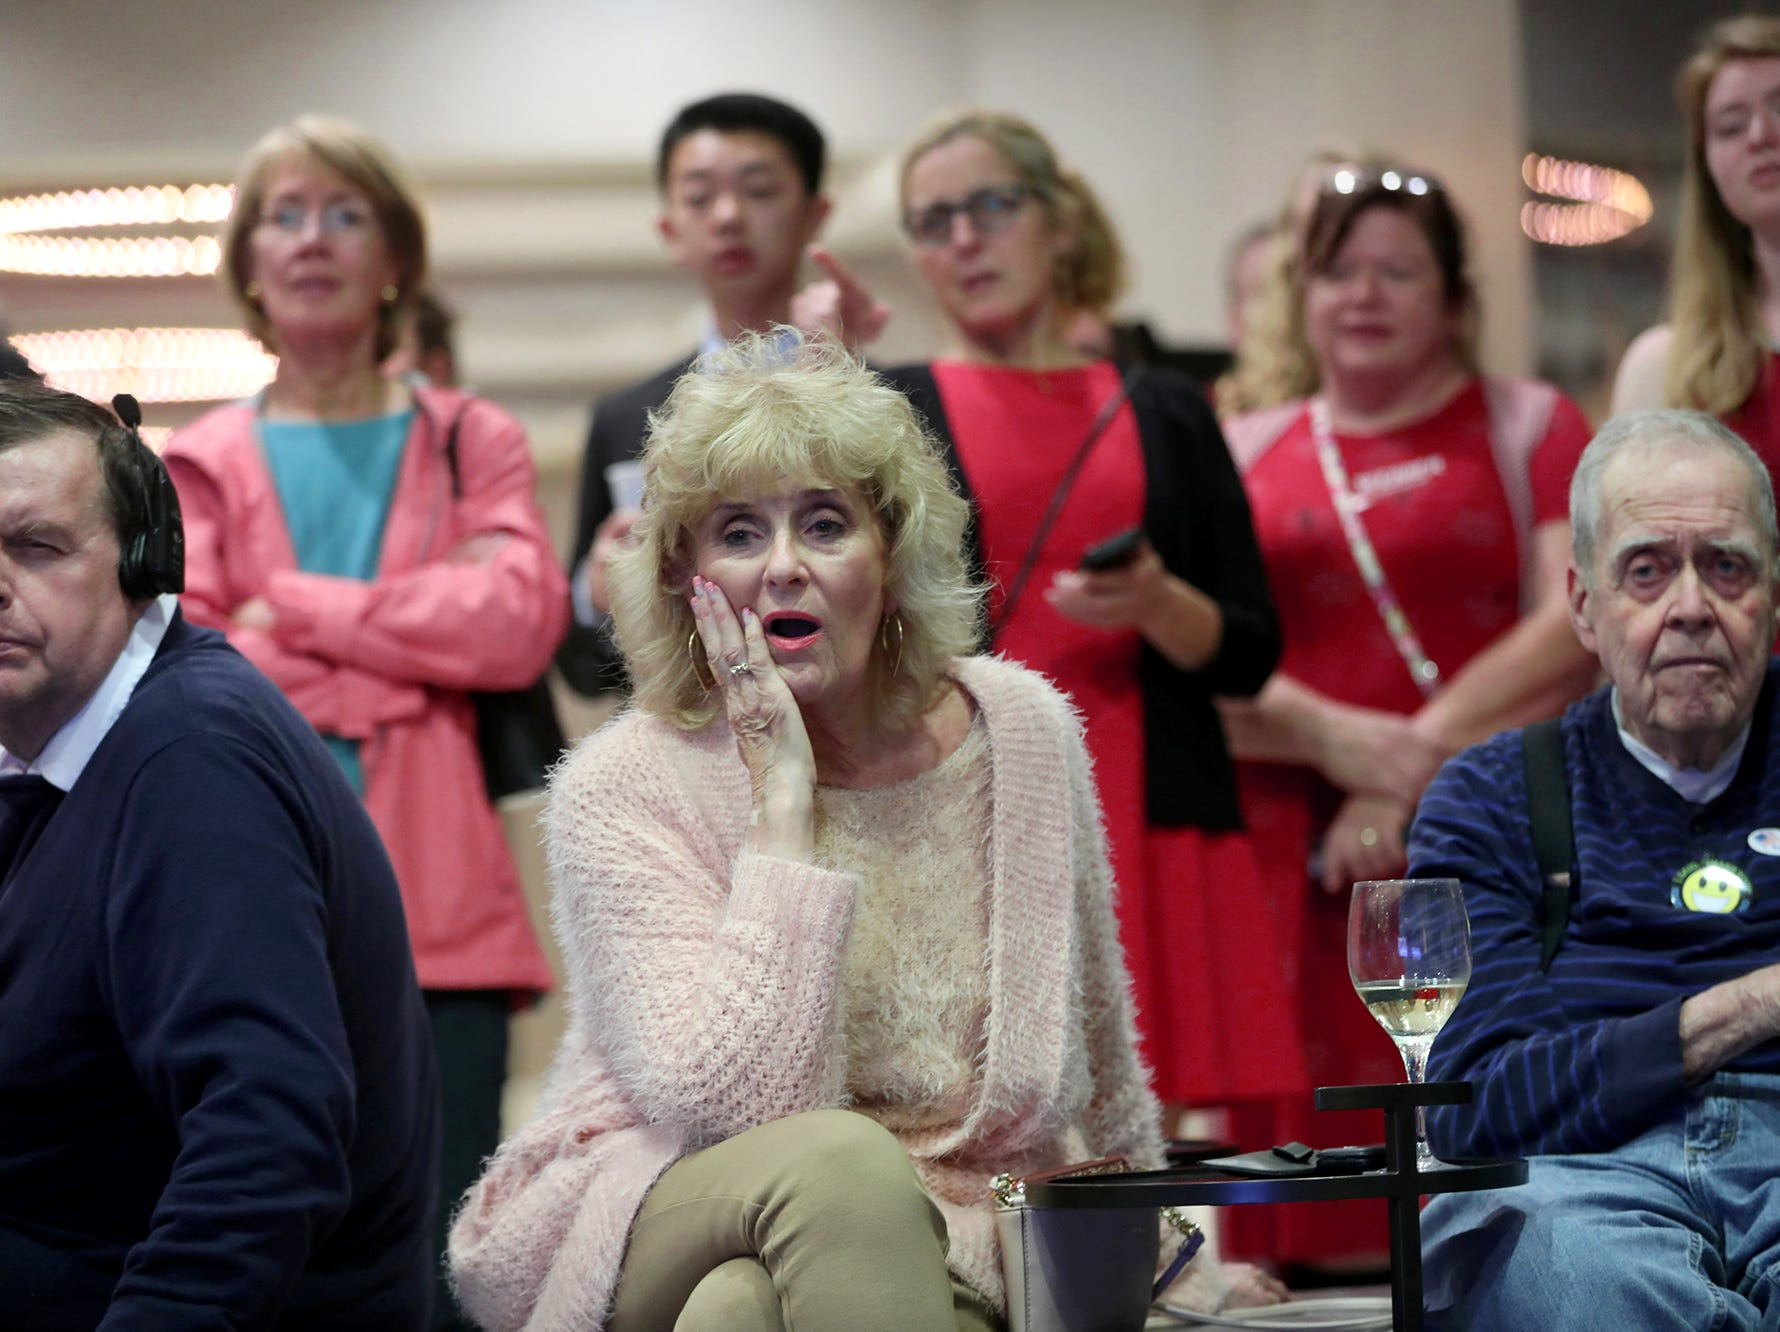 Darlene Rasmusson, of Bedminster, and other Republicans react as they hear Bob Menendez won his race for senator. Tuesday, November 6, 2018